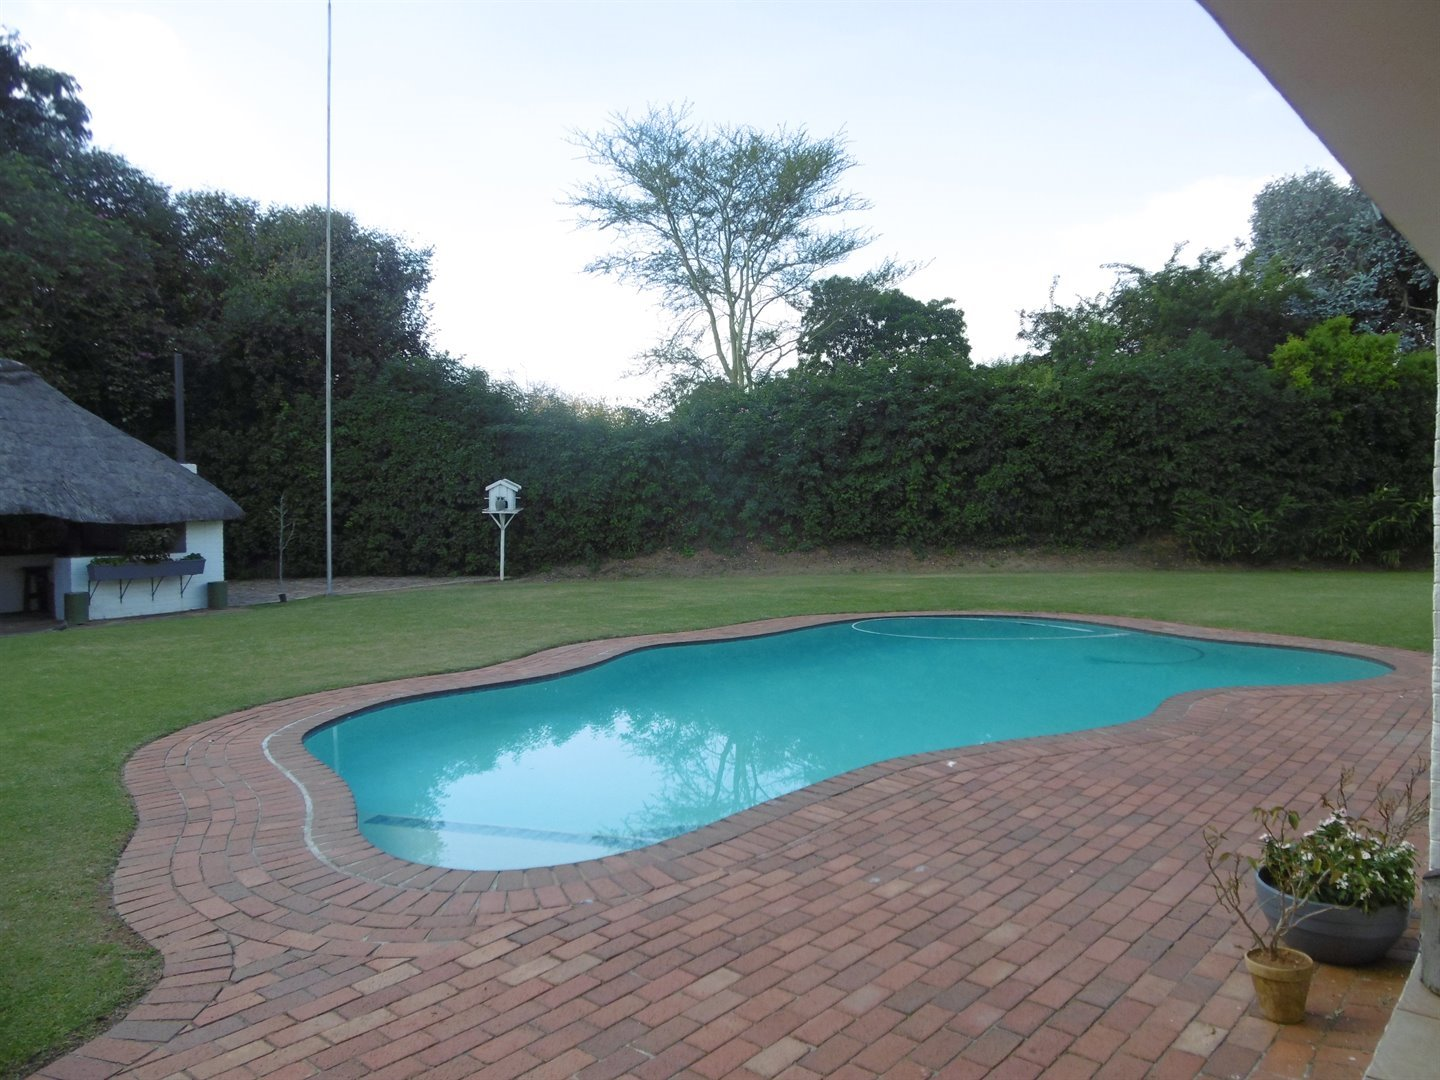 Bryanston & Ext property for sale. Ref No: 13482413. Picture no 11